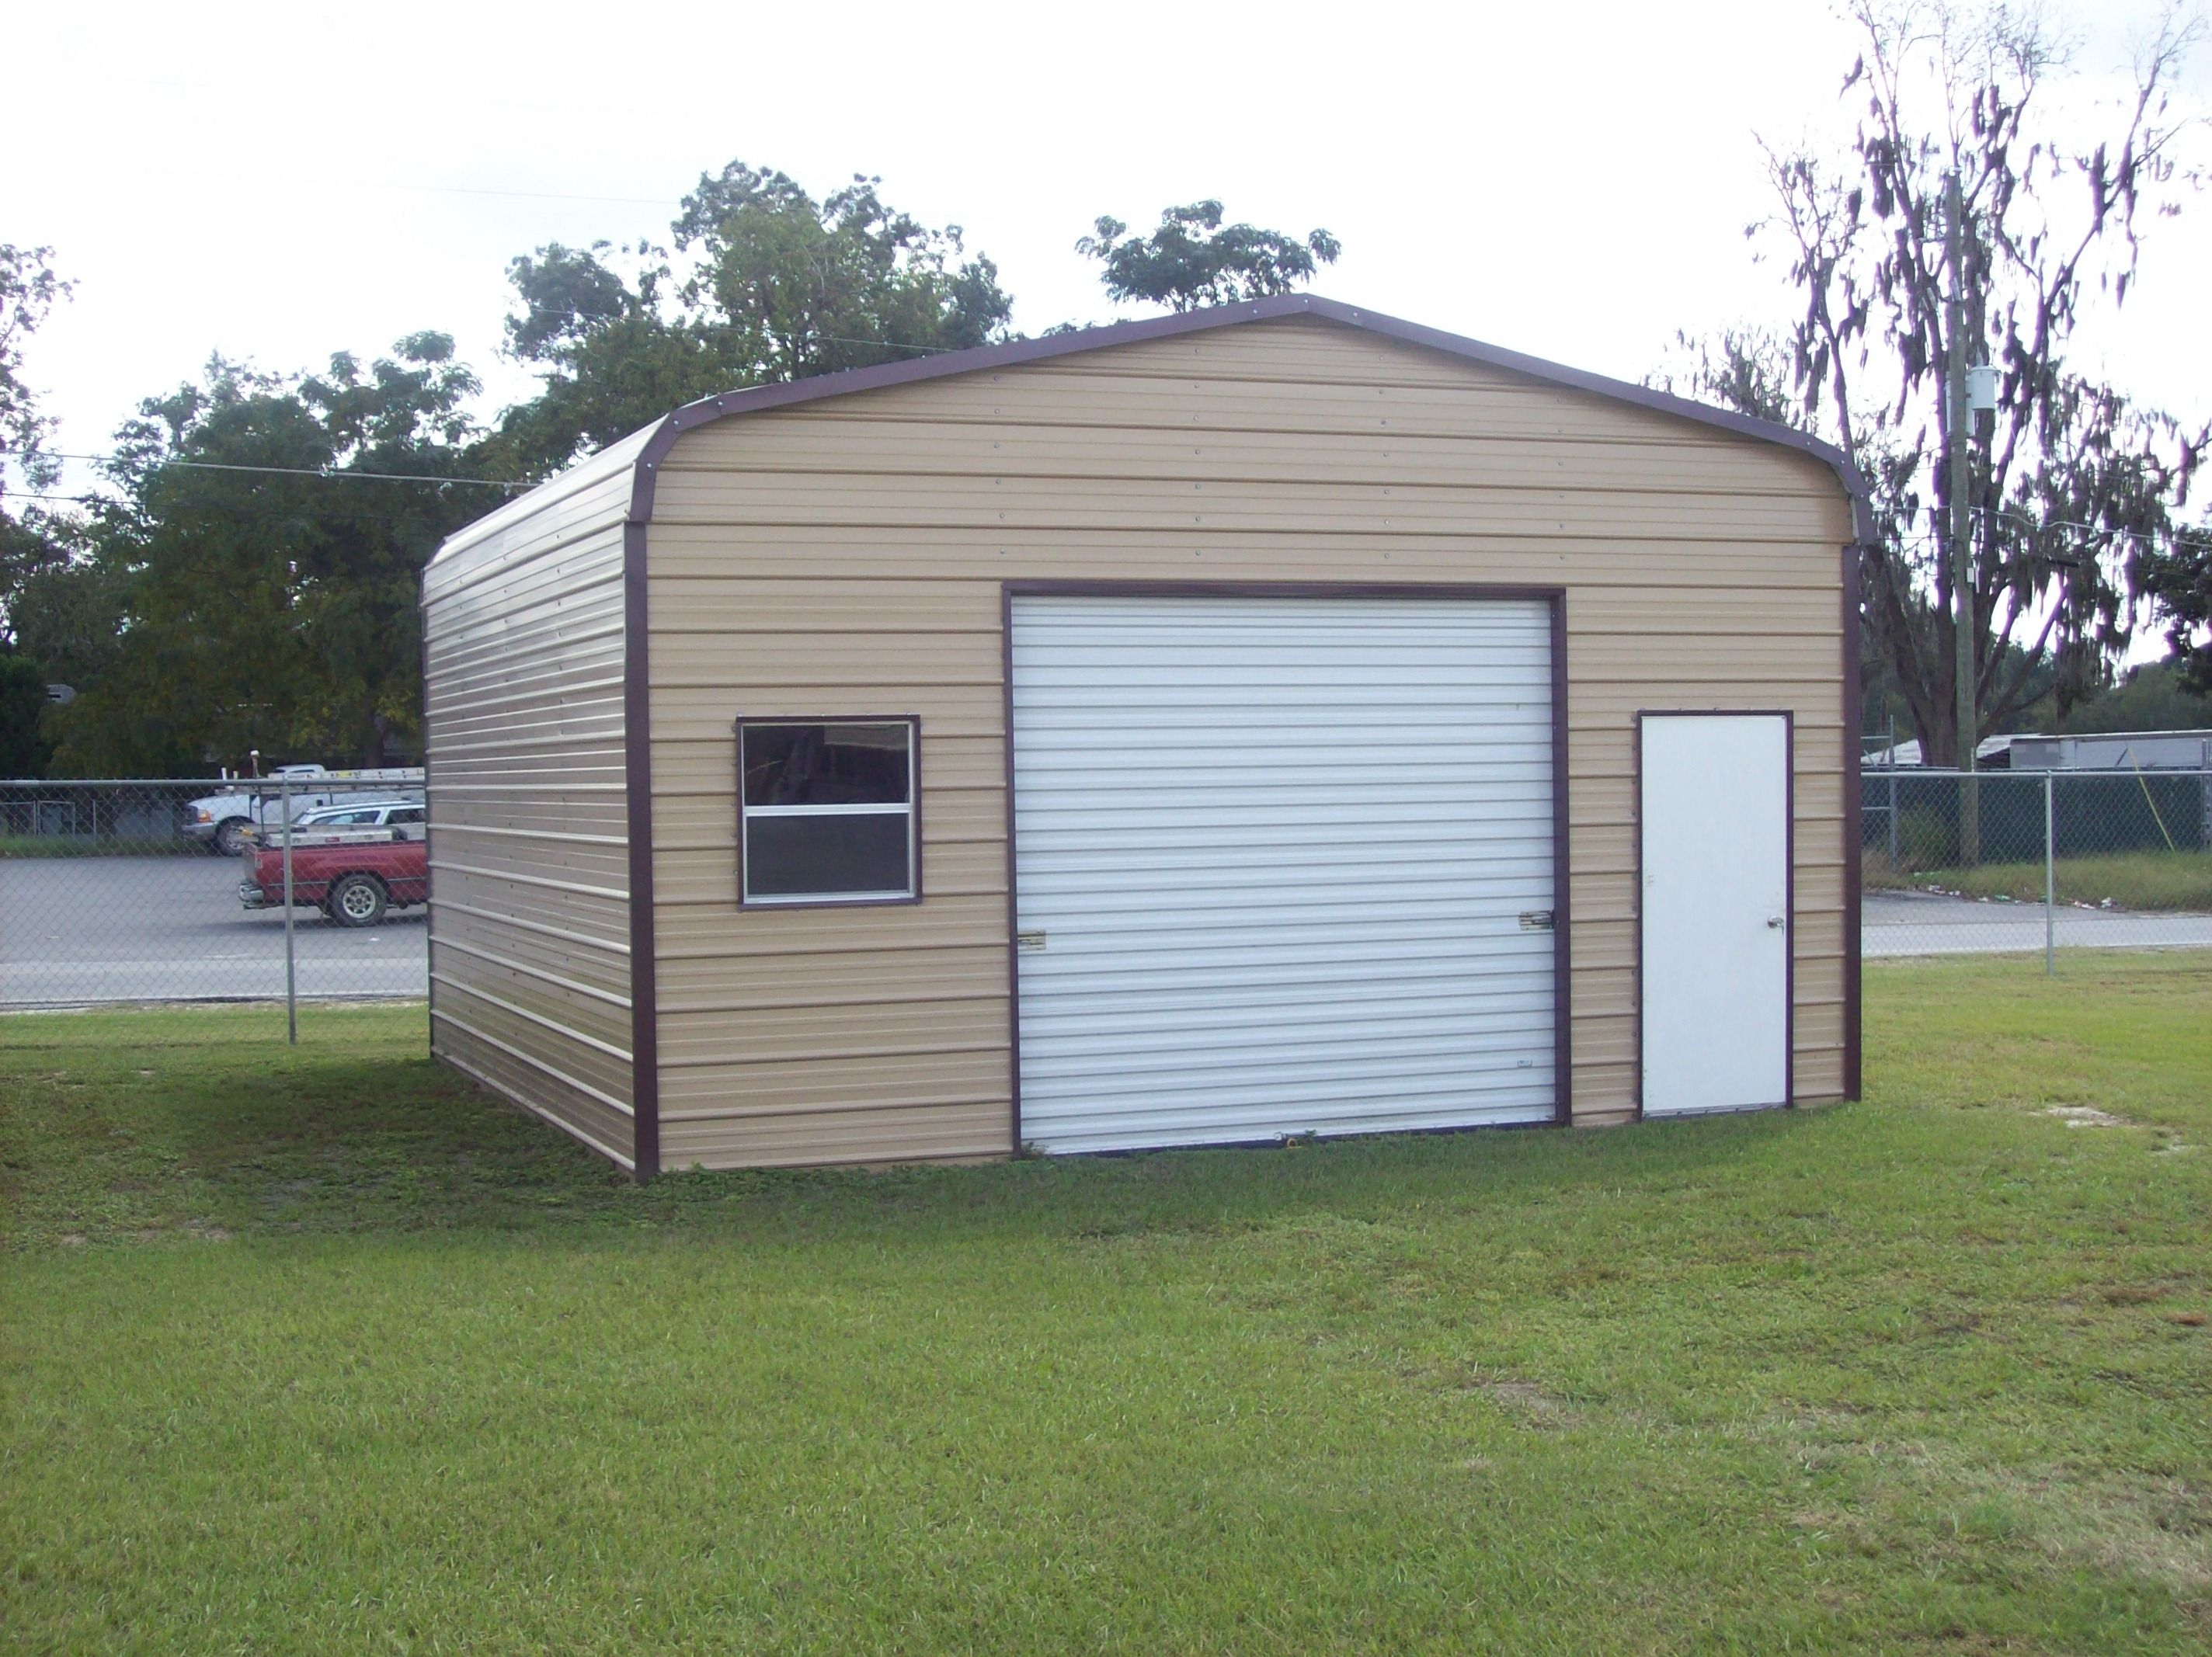 20 x 21 x 10 garage choice metal buildings for 10 x 8 garage door price